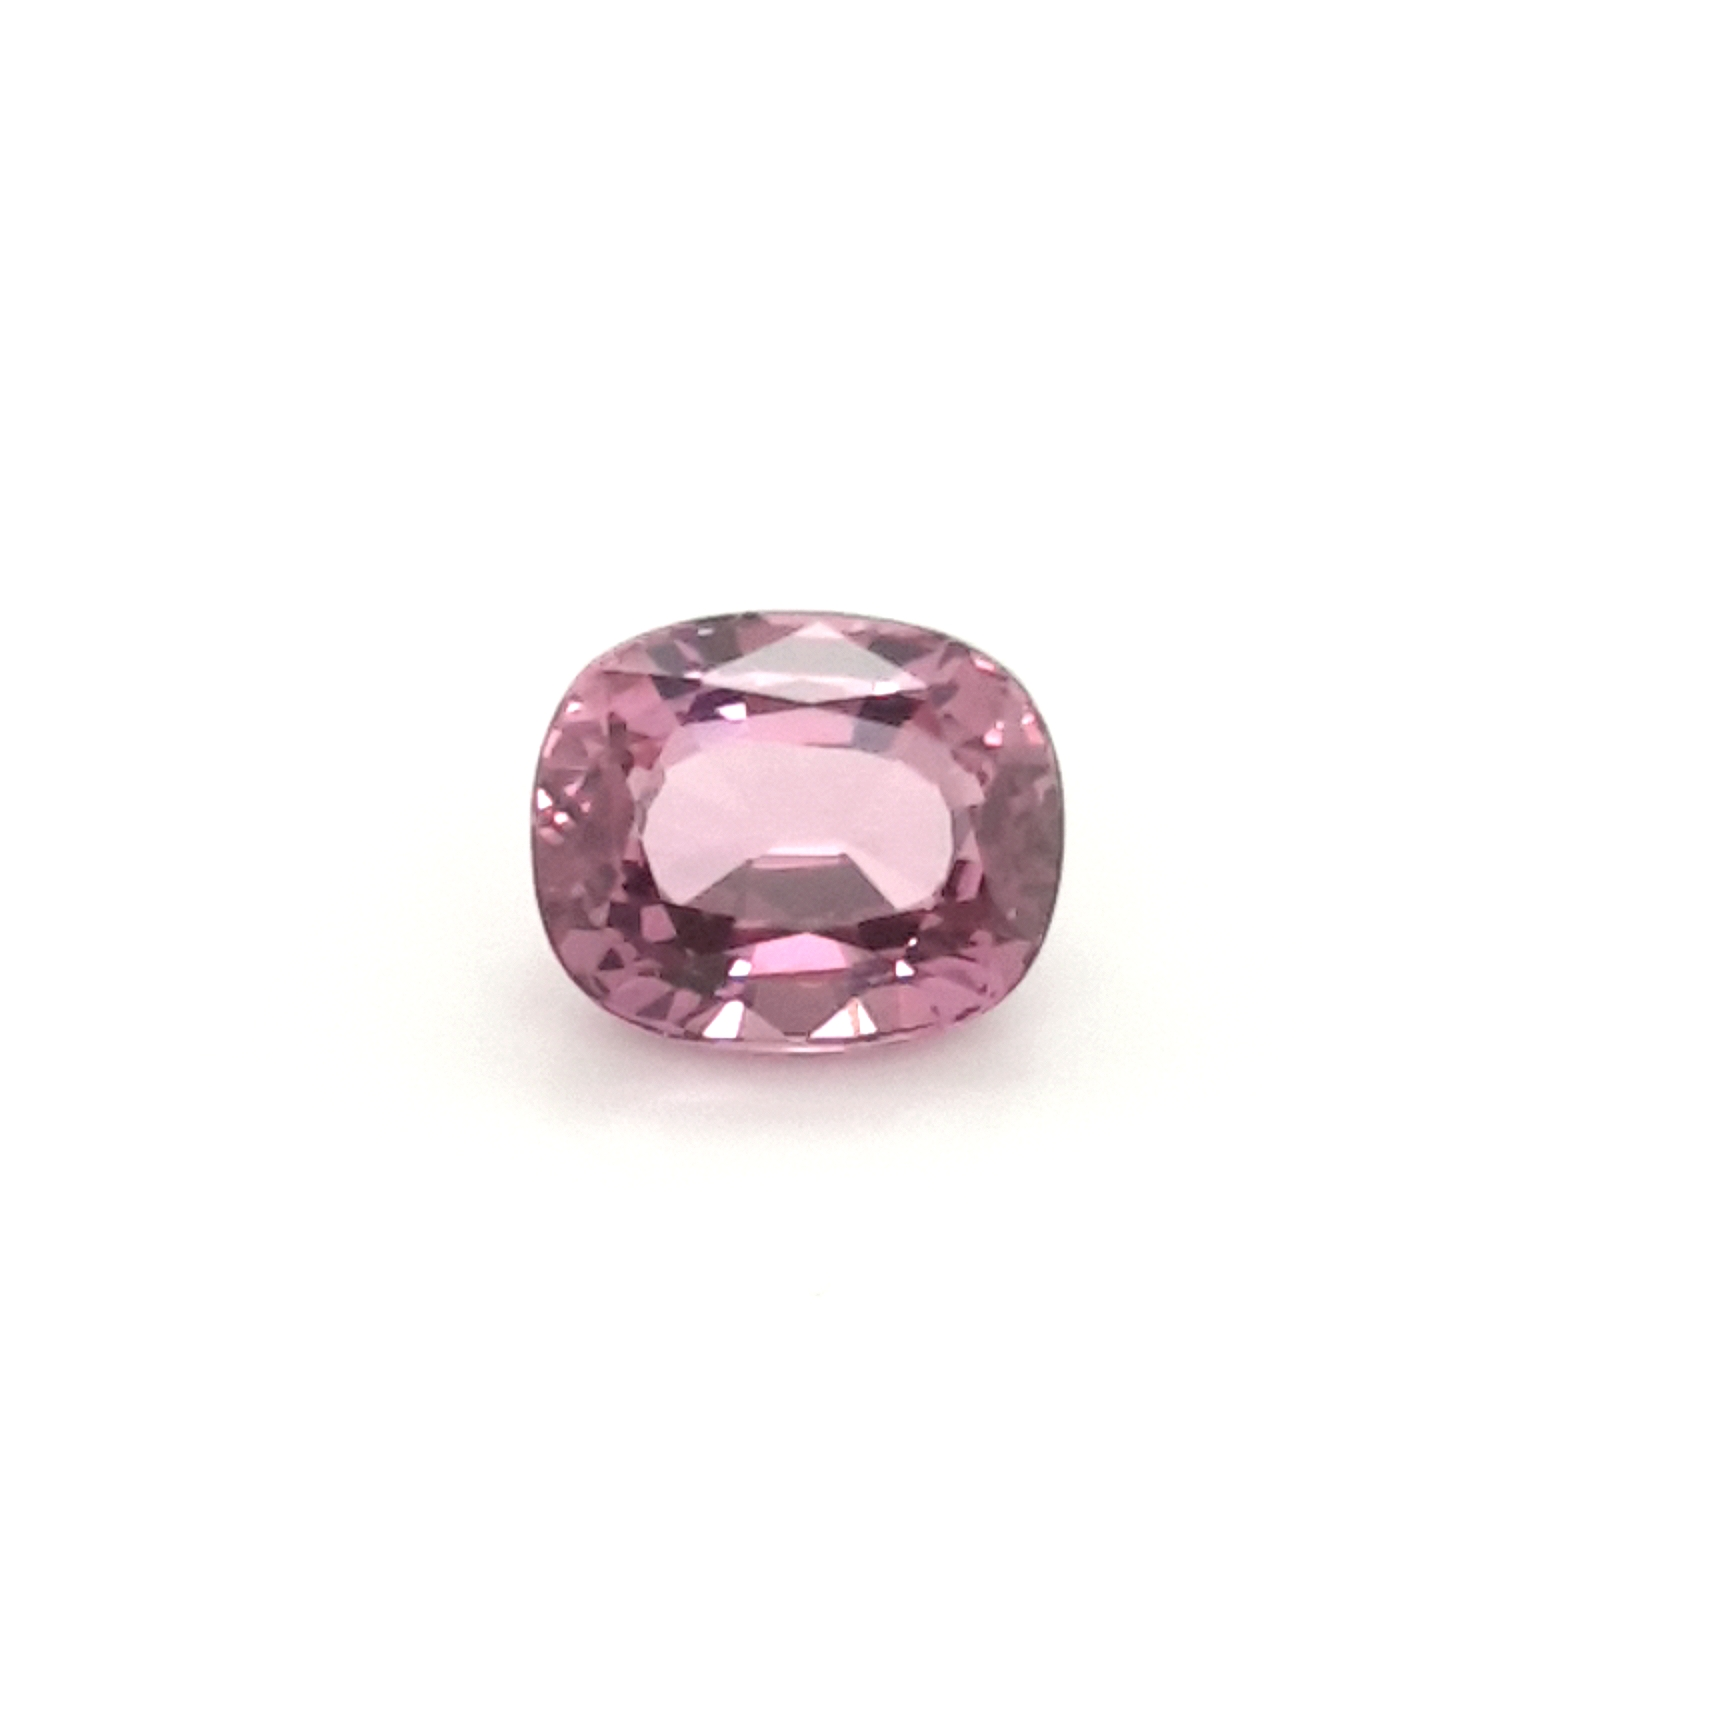 4,48ct. PurplePink Spinel SNJ19C45 ClaudiaHamann